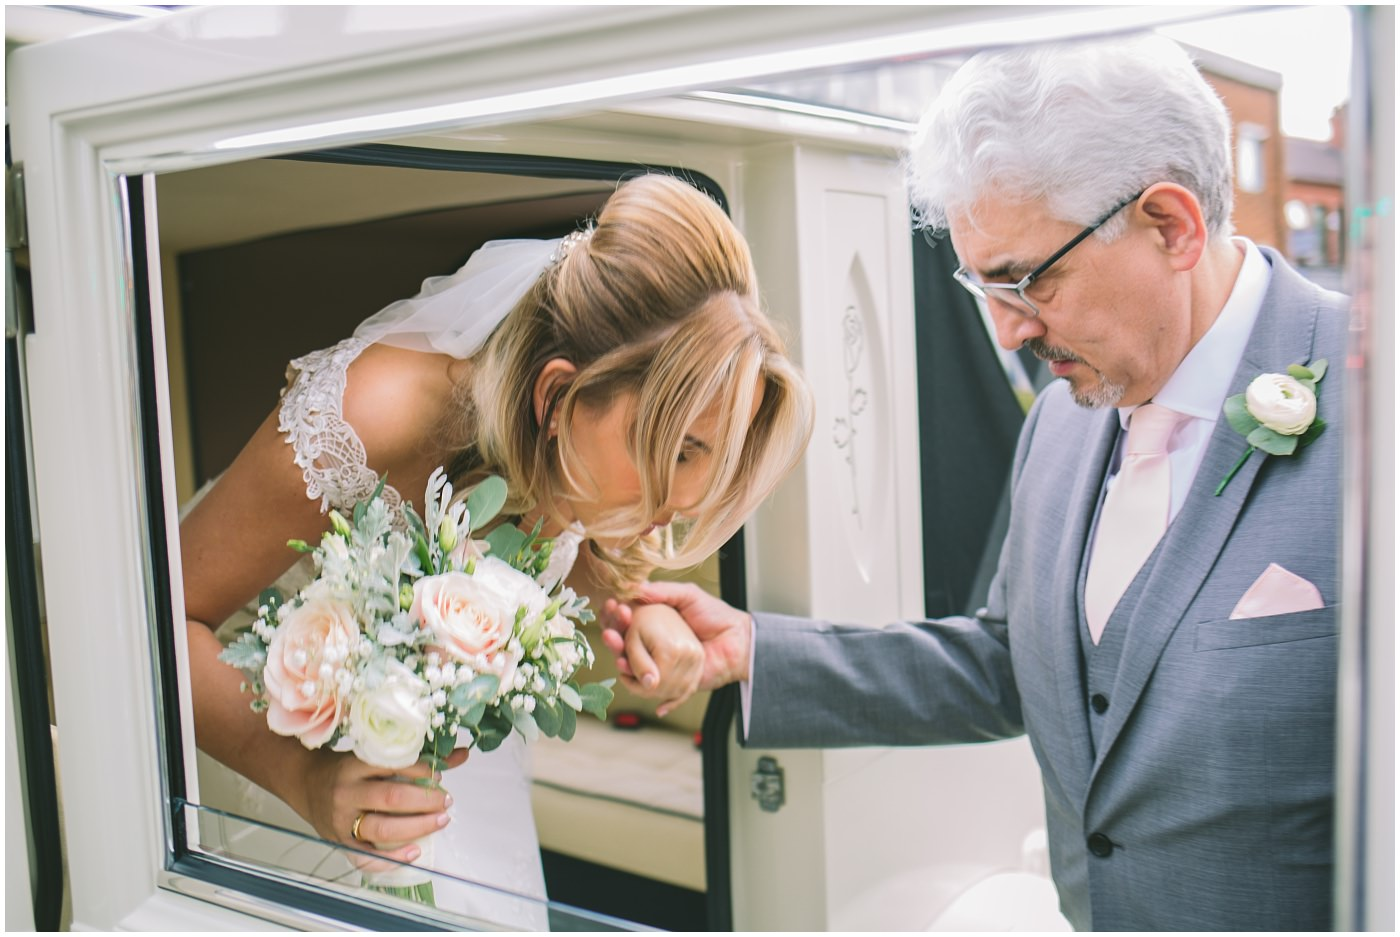 brides father helps her out of the wedding car